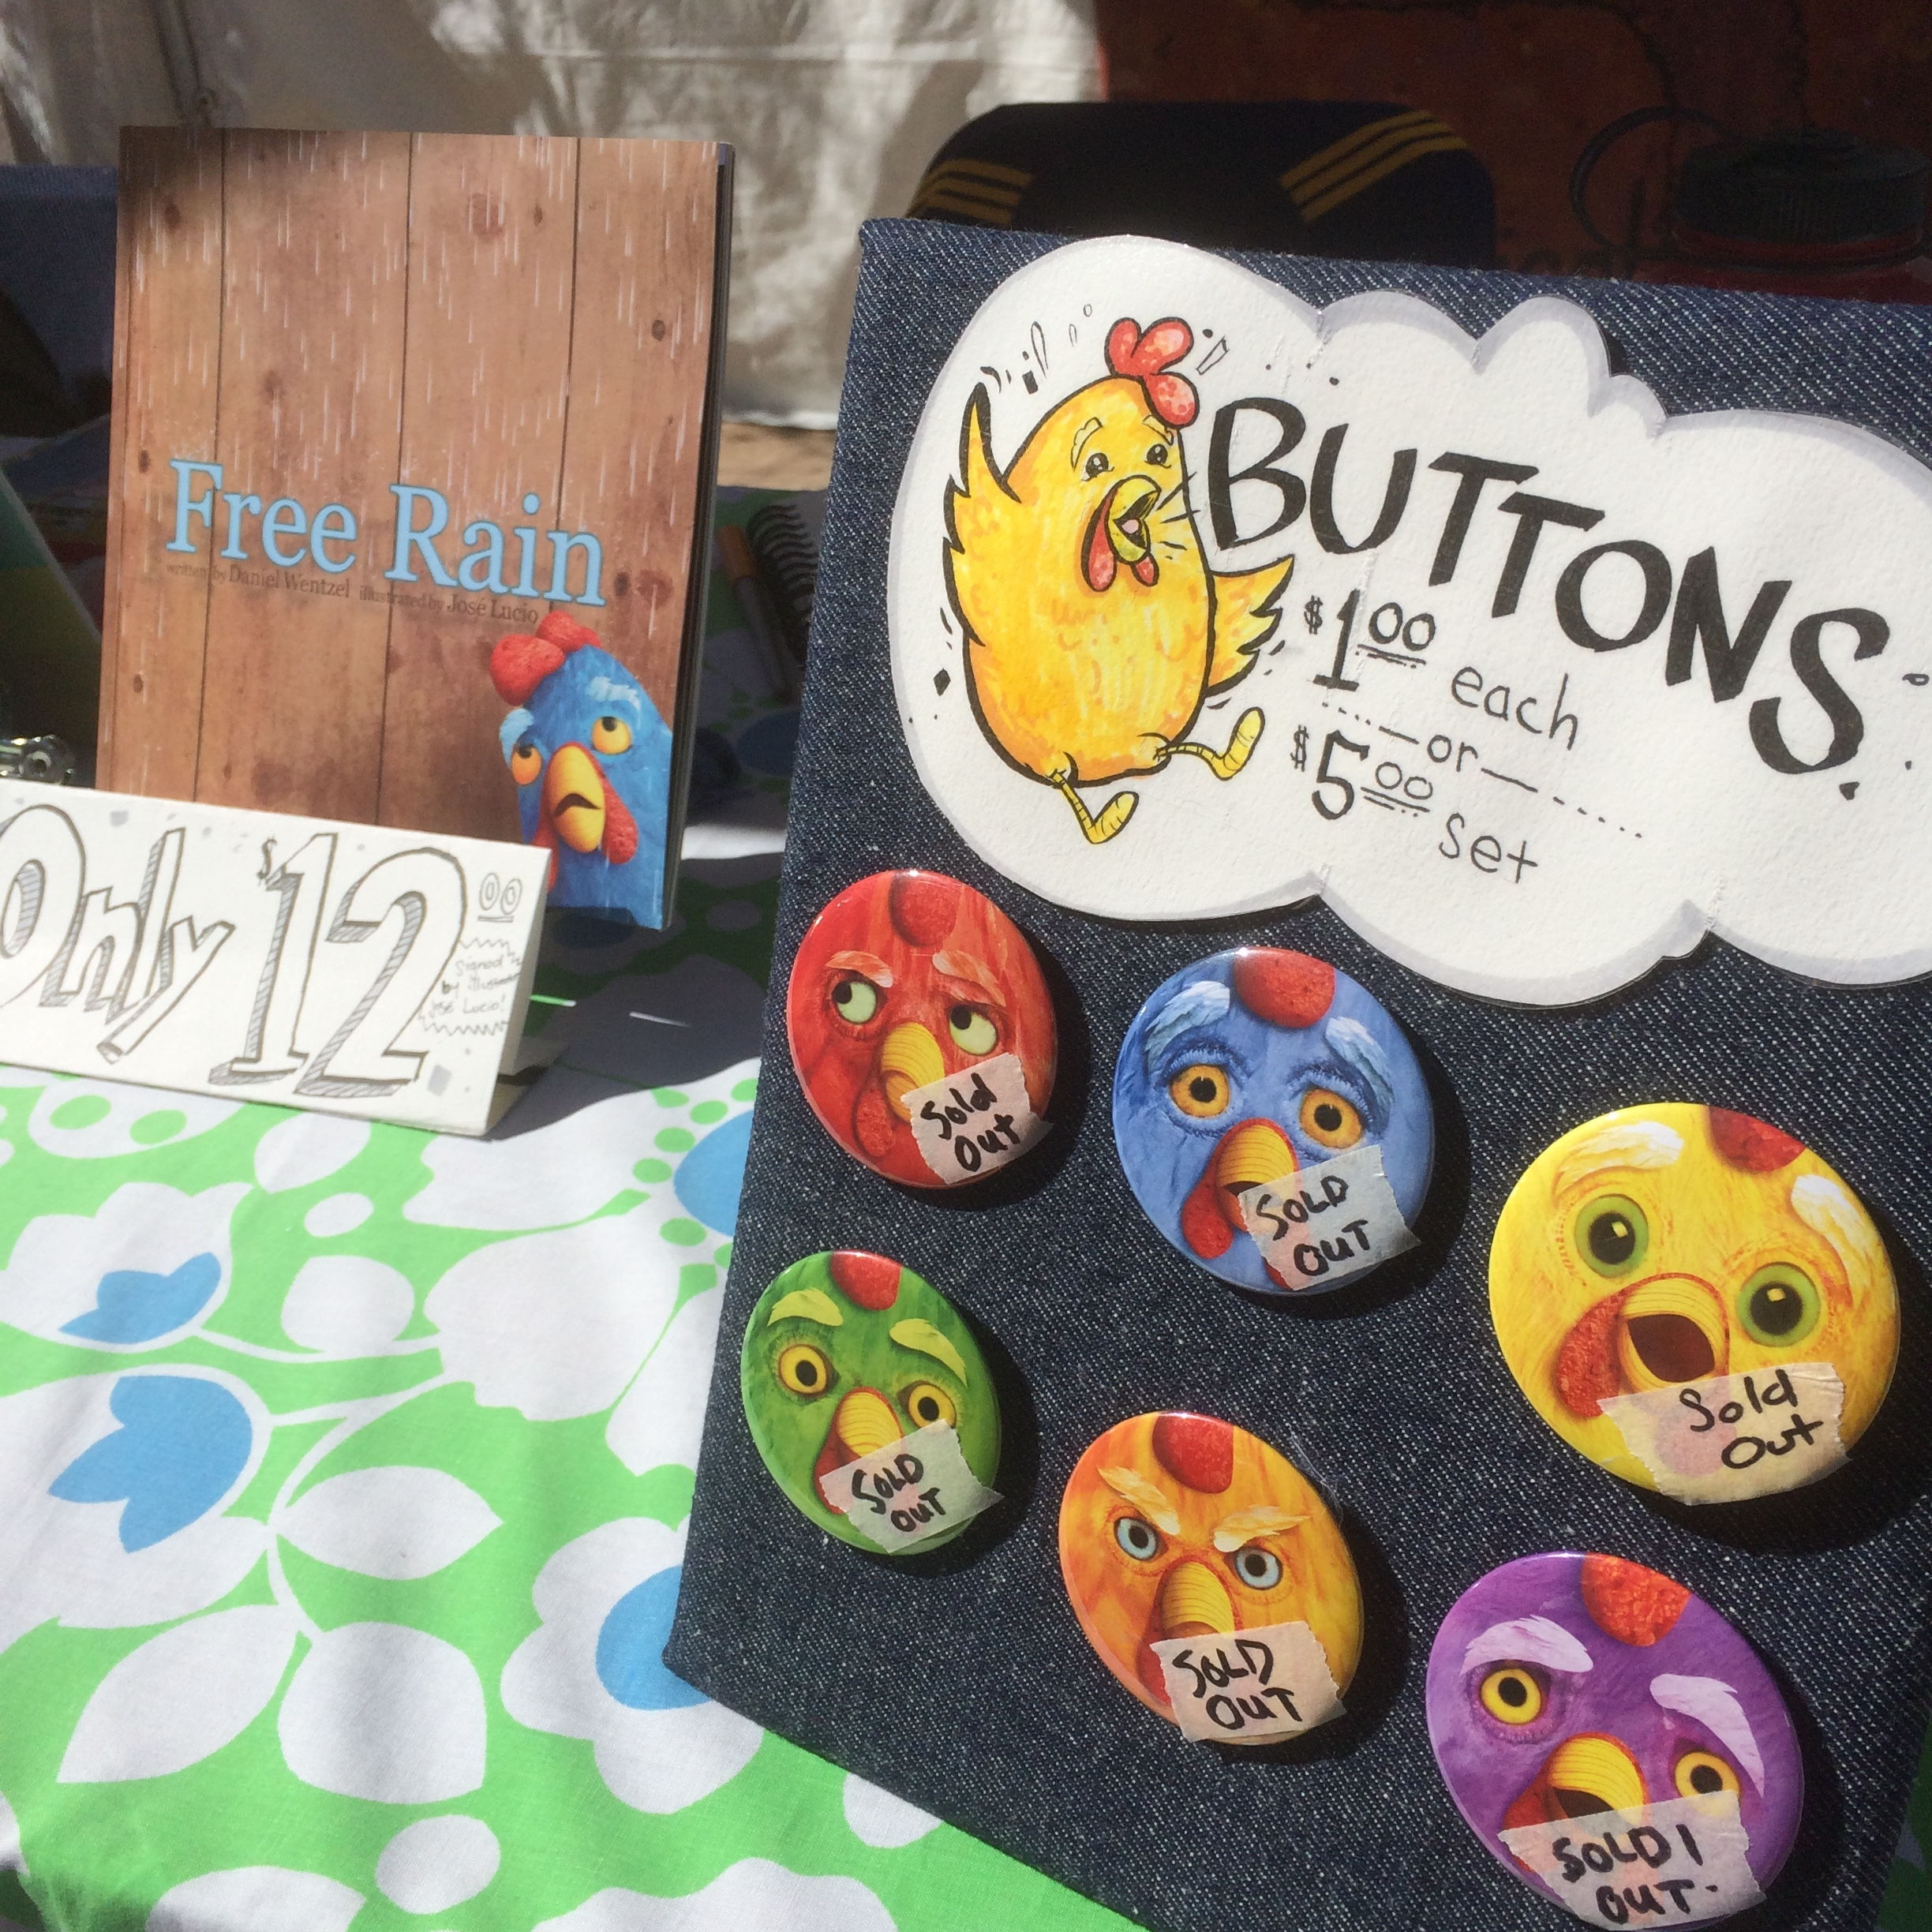 The last chicken button sold in Vegas.